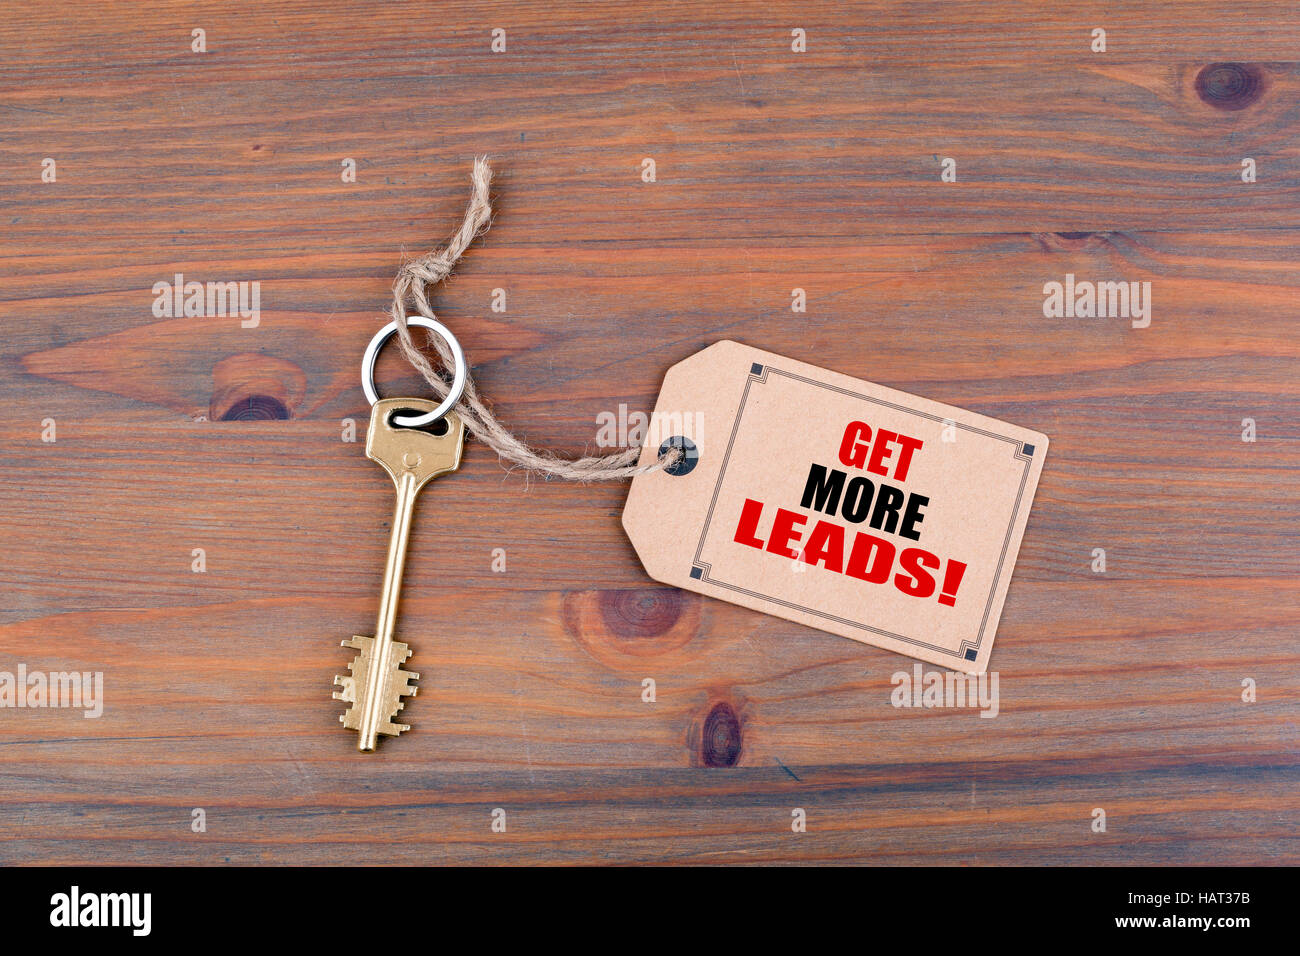 Key and a note on a wooden table with text - Stock Image